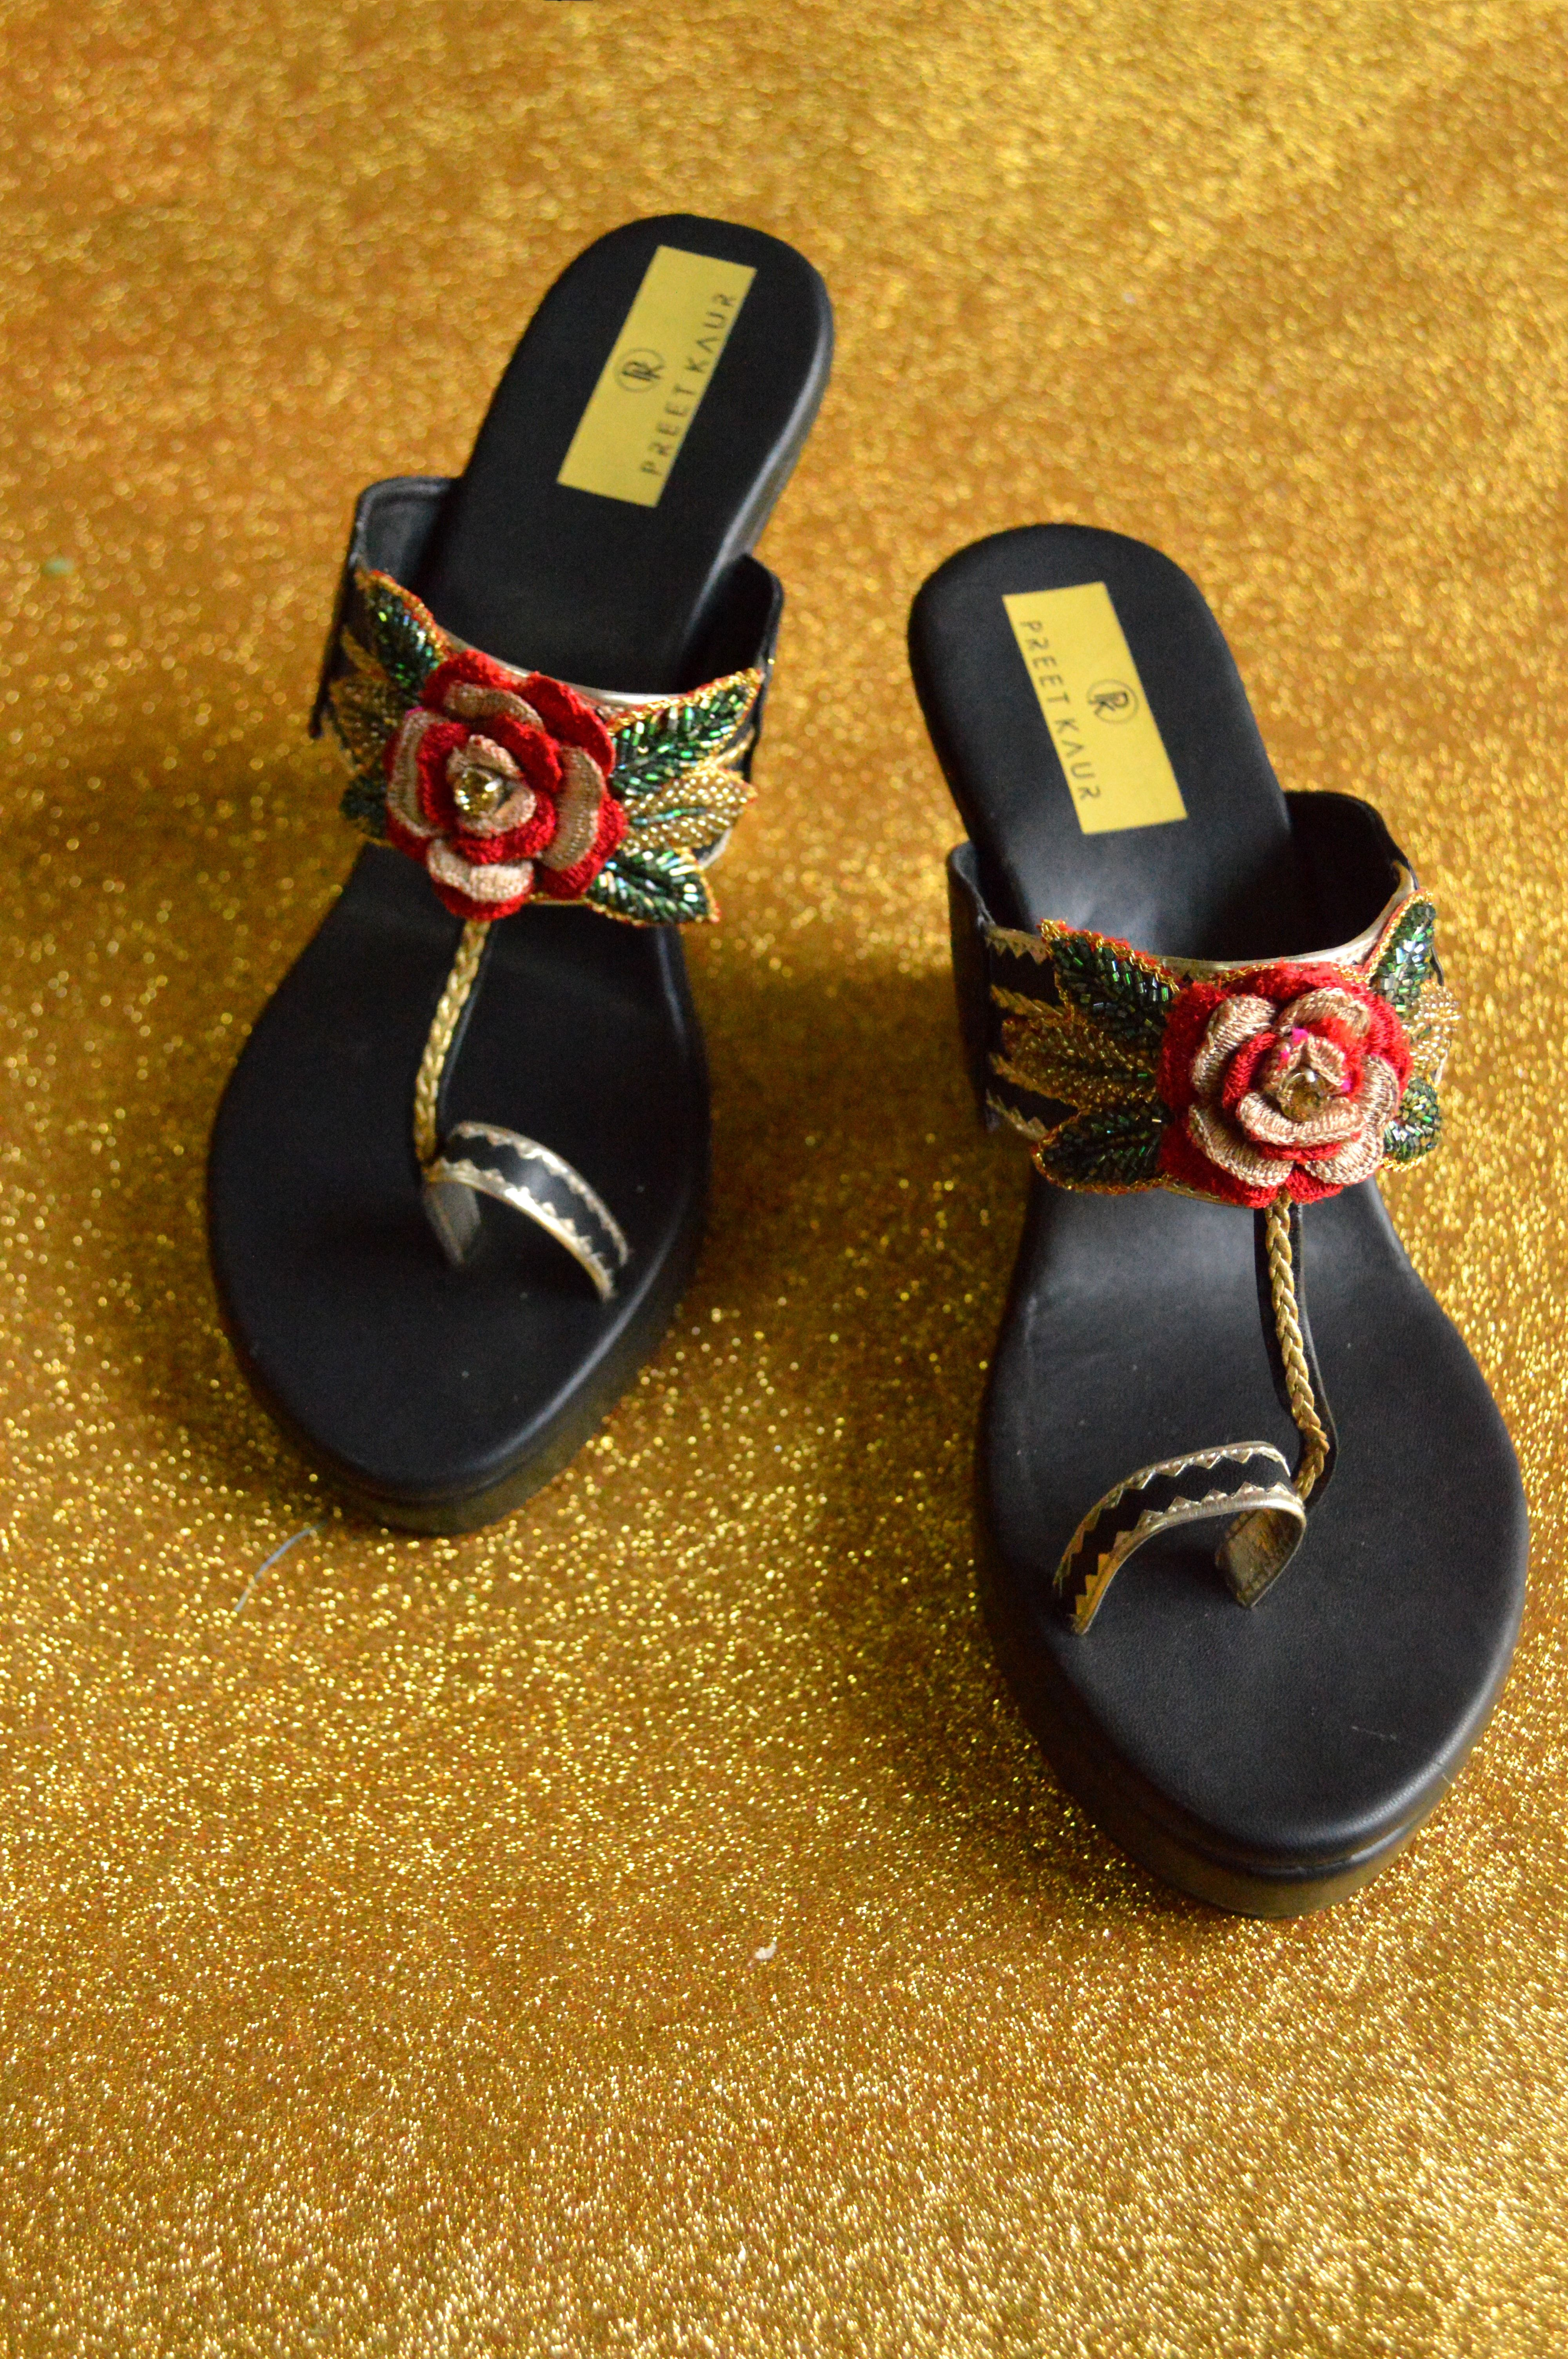 570333f94e25 These Black Heels Are Made Of Faux Leather And Embellished With Hand  Embroidery Work By Designer Preet Kaur. Our Bridal Sandals High Heels Will  Steal The ...